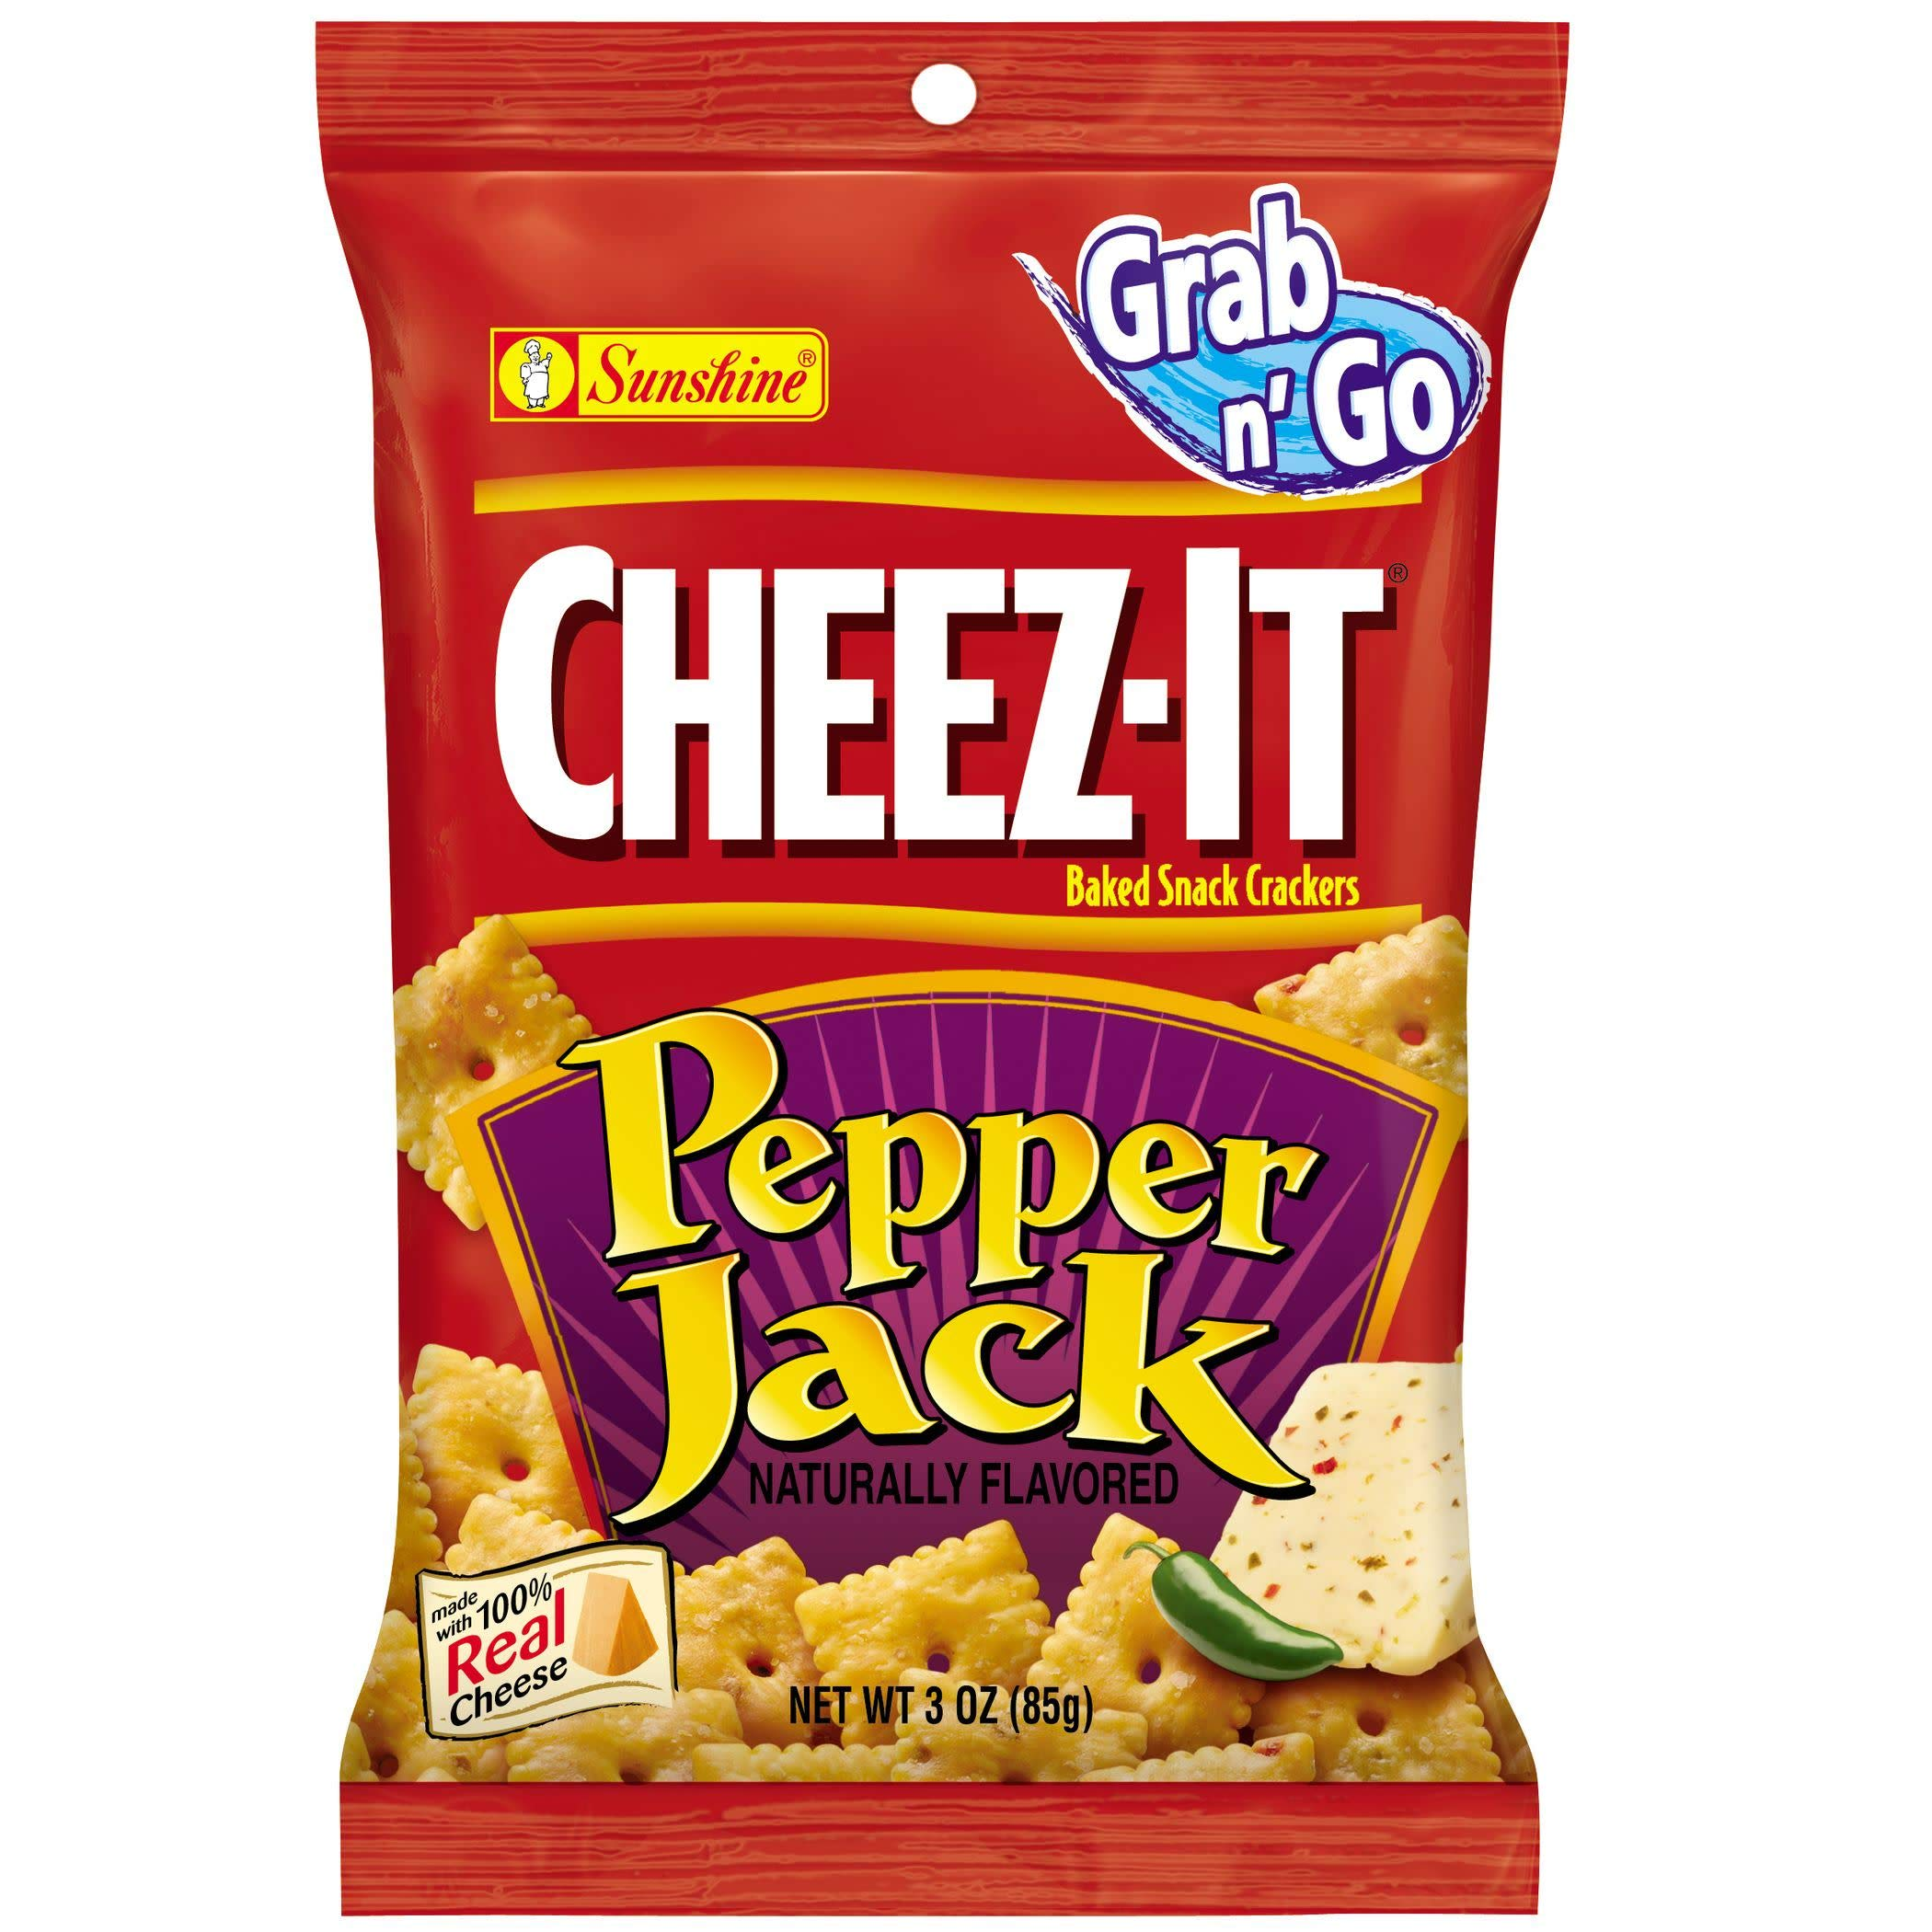 CheezIt Grab n' Go Pepper Jack Baked Snack Crackers, 3 Ounce, 36 Count by Cheez-It (Image #1)